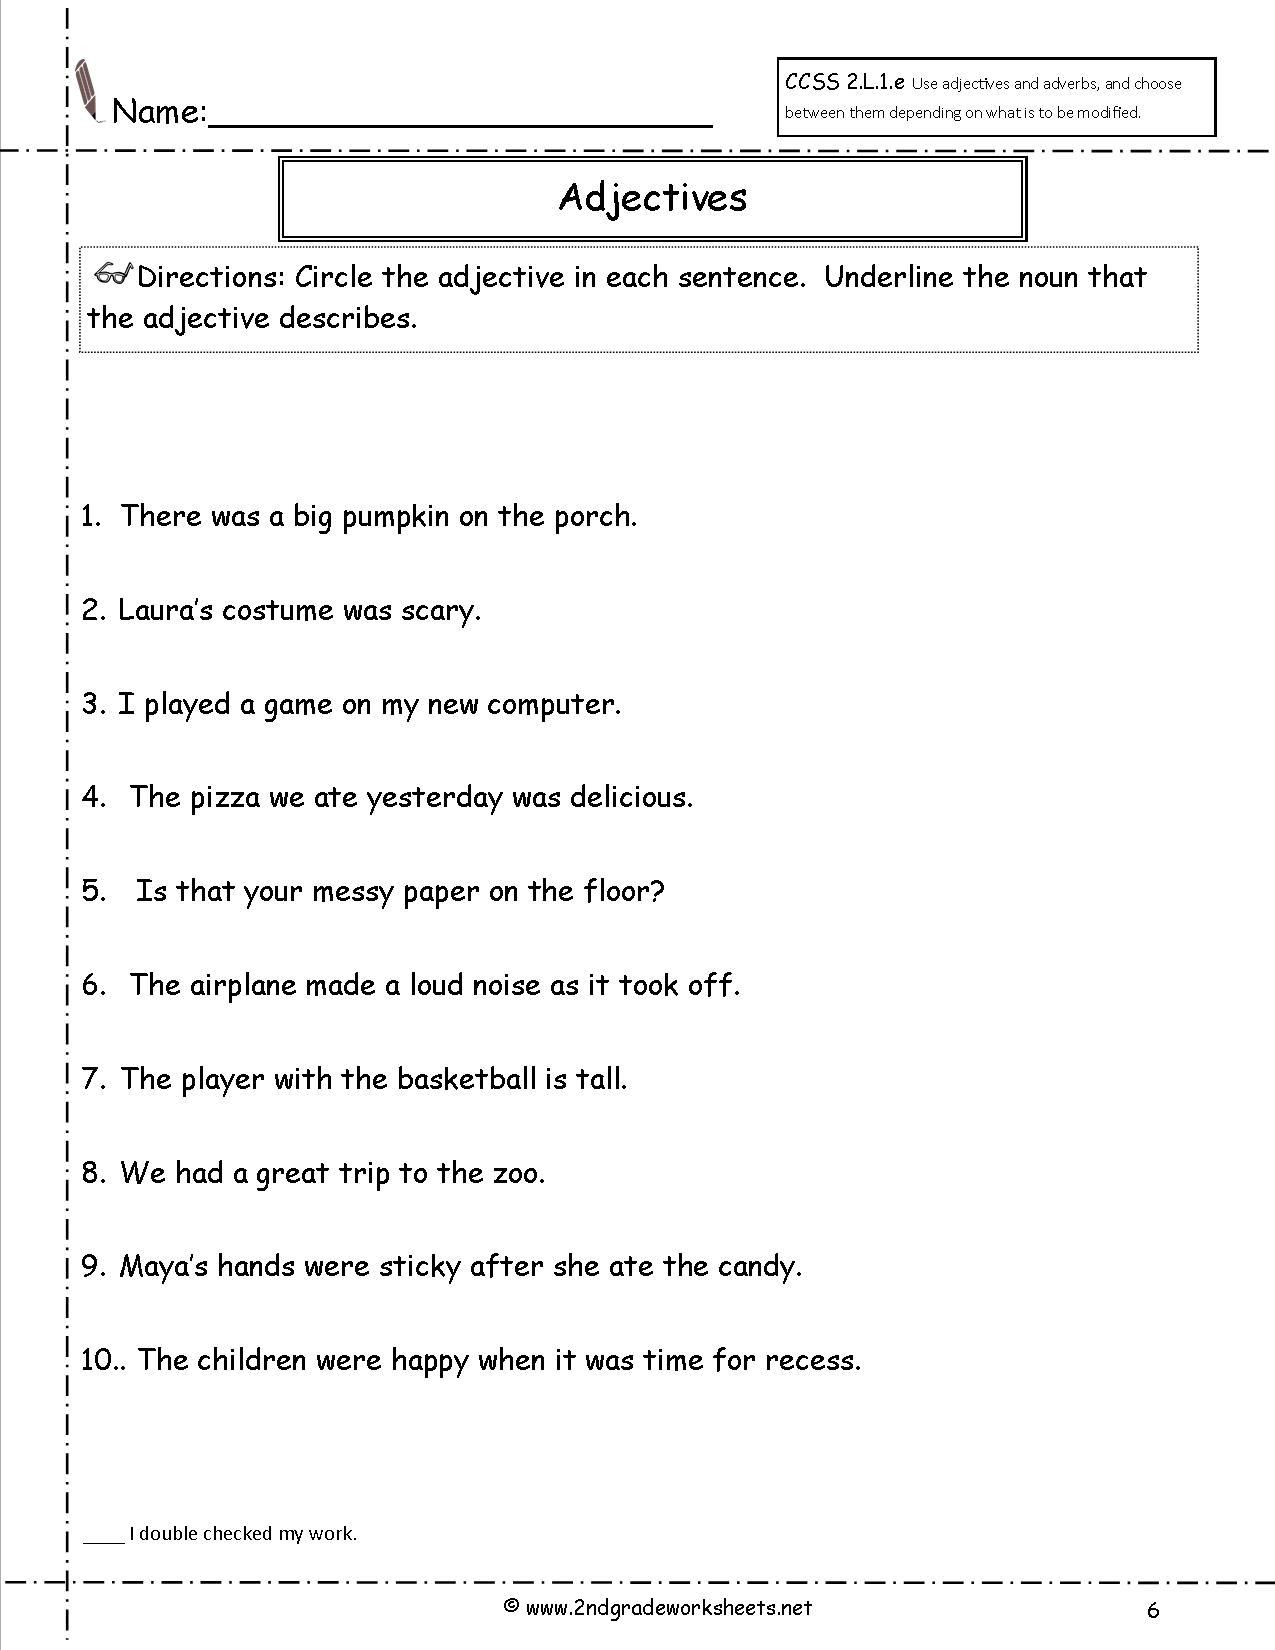 Adjectives Worksheets for Grade 1 Looking for Tutor Anime Girl Coloring Pages Adjectives